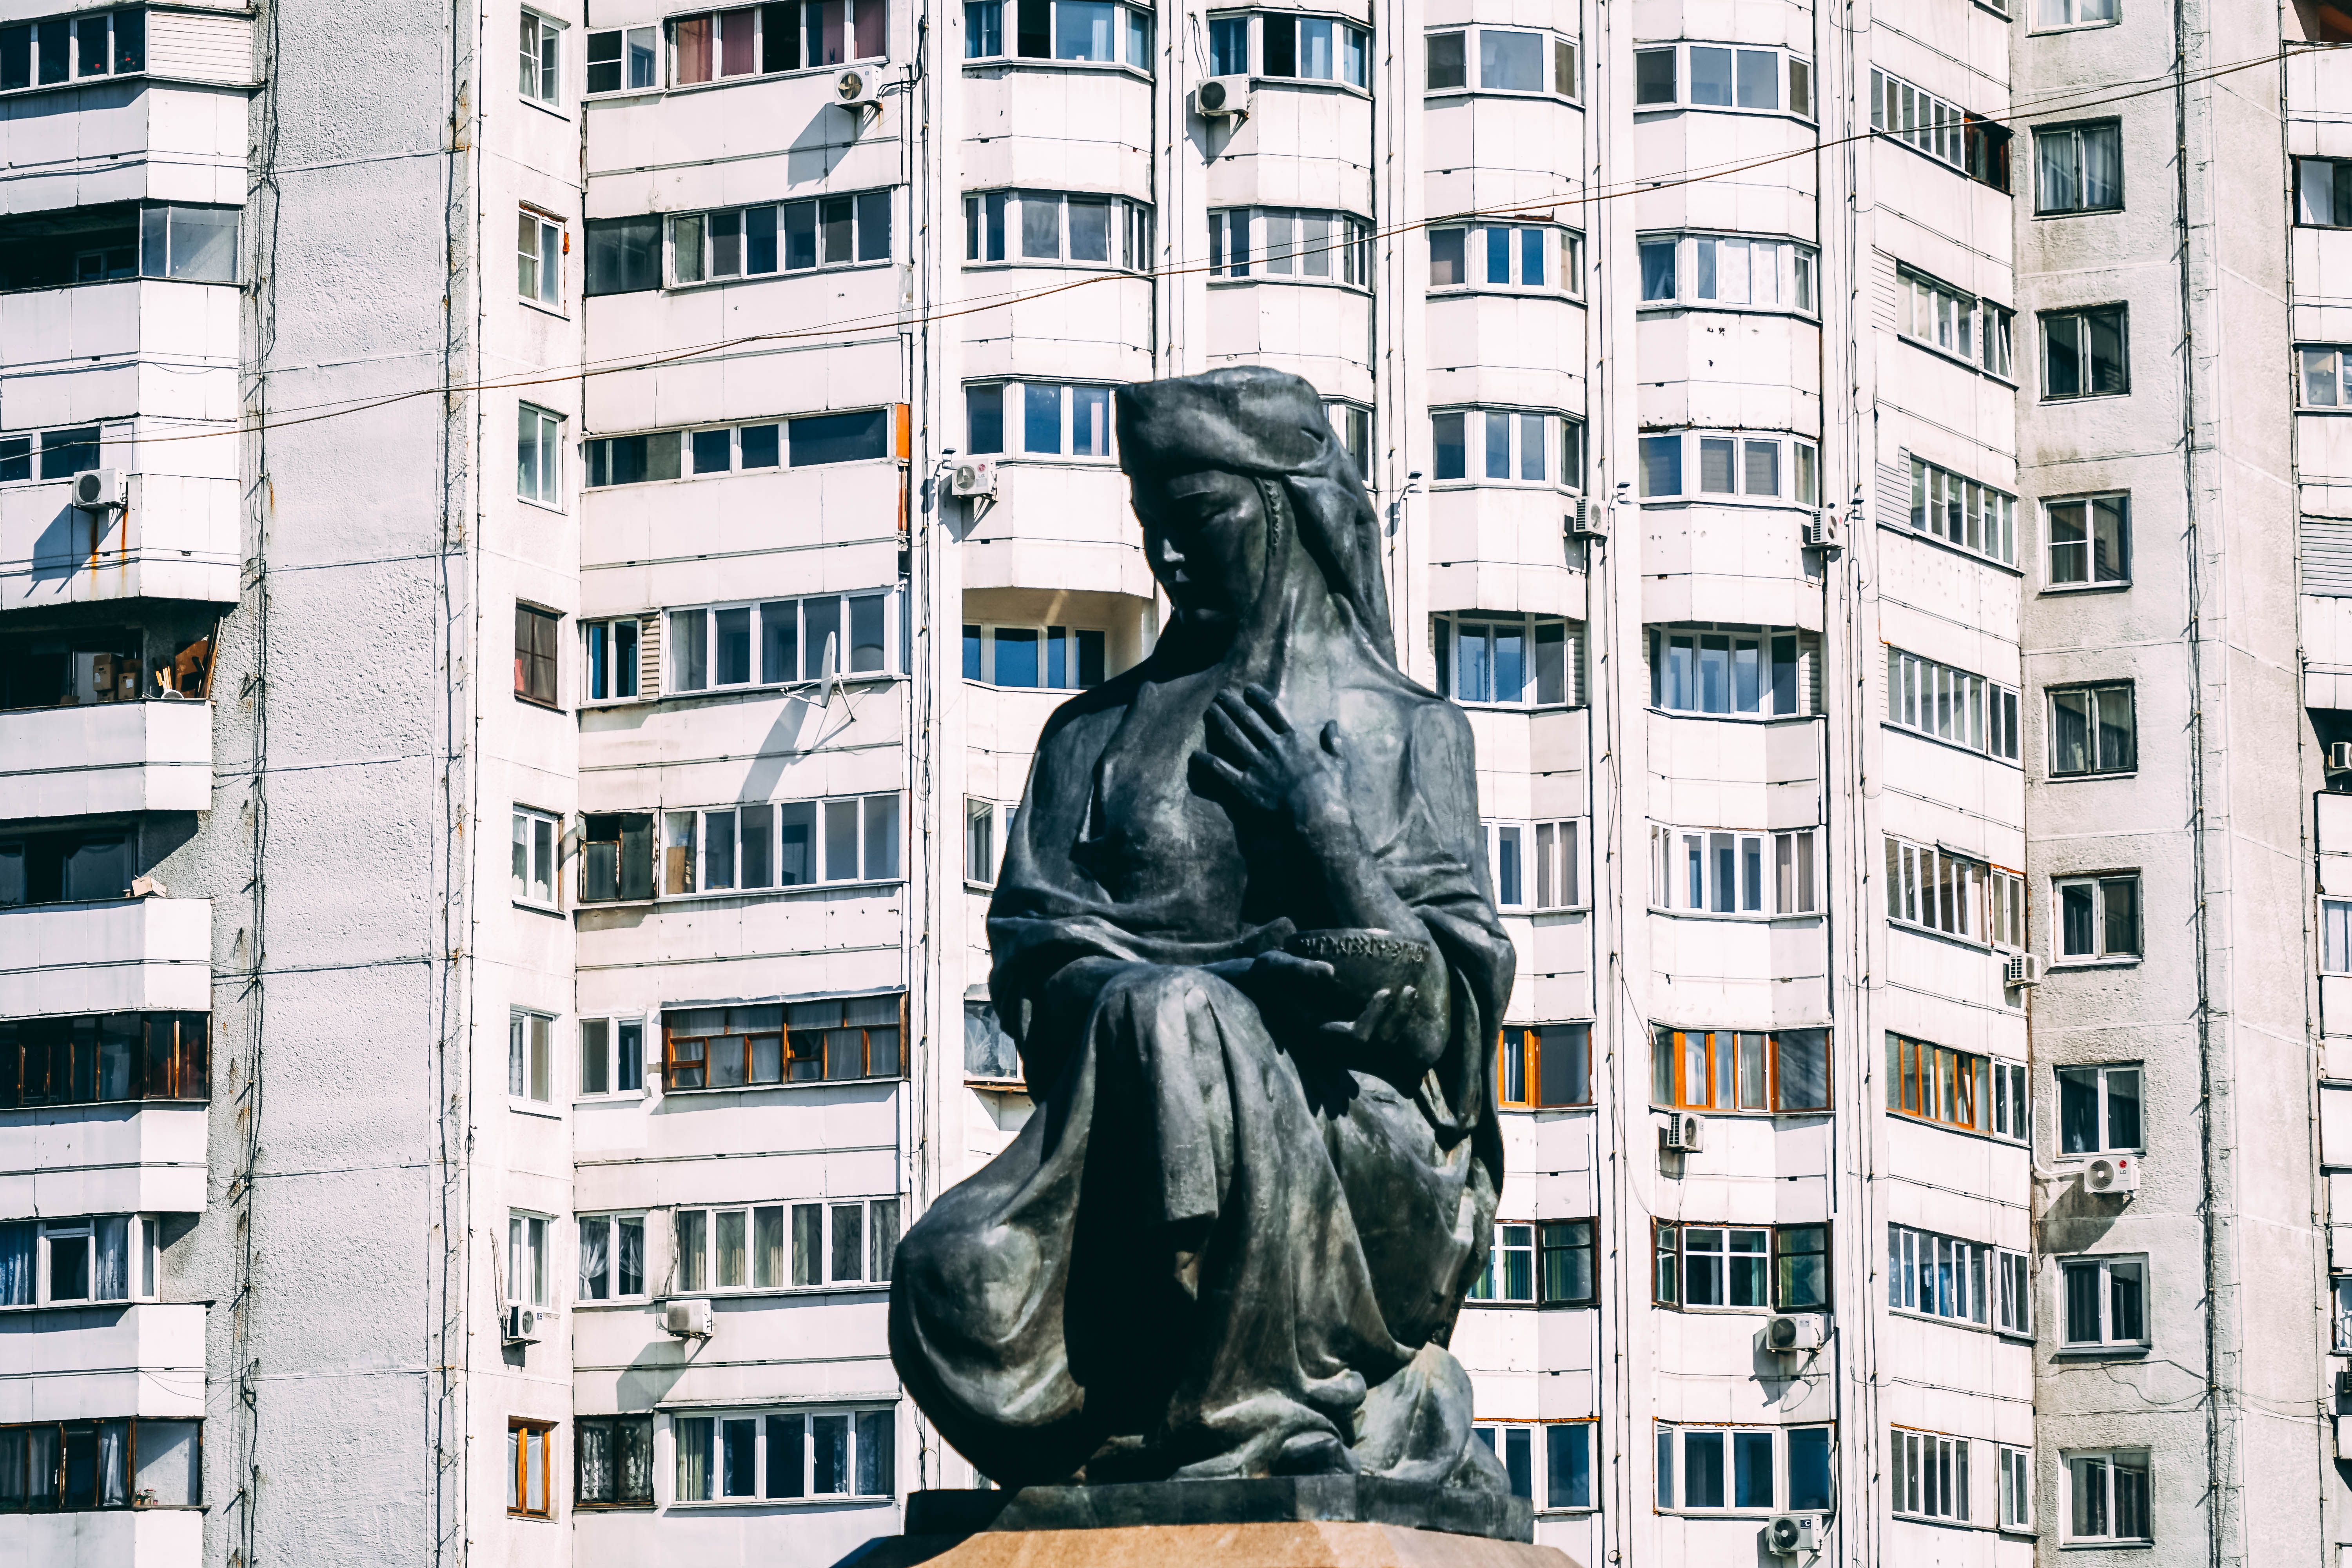 Almaty mother Earth statue